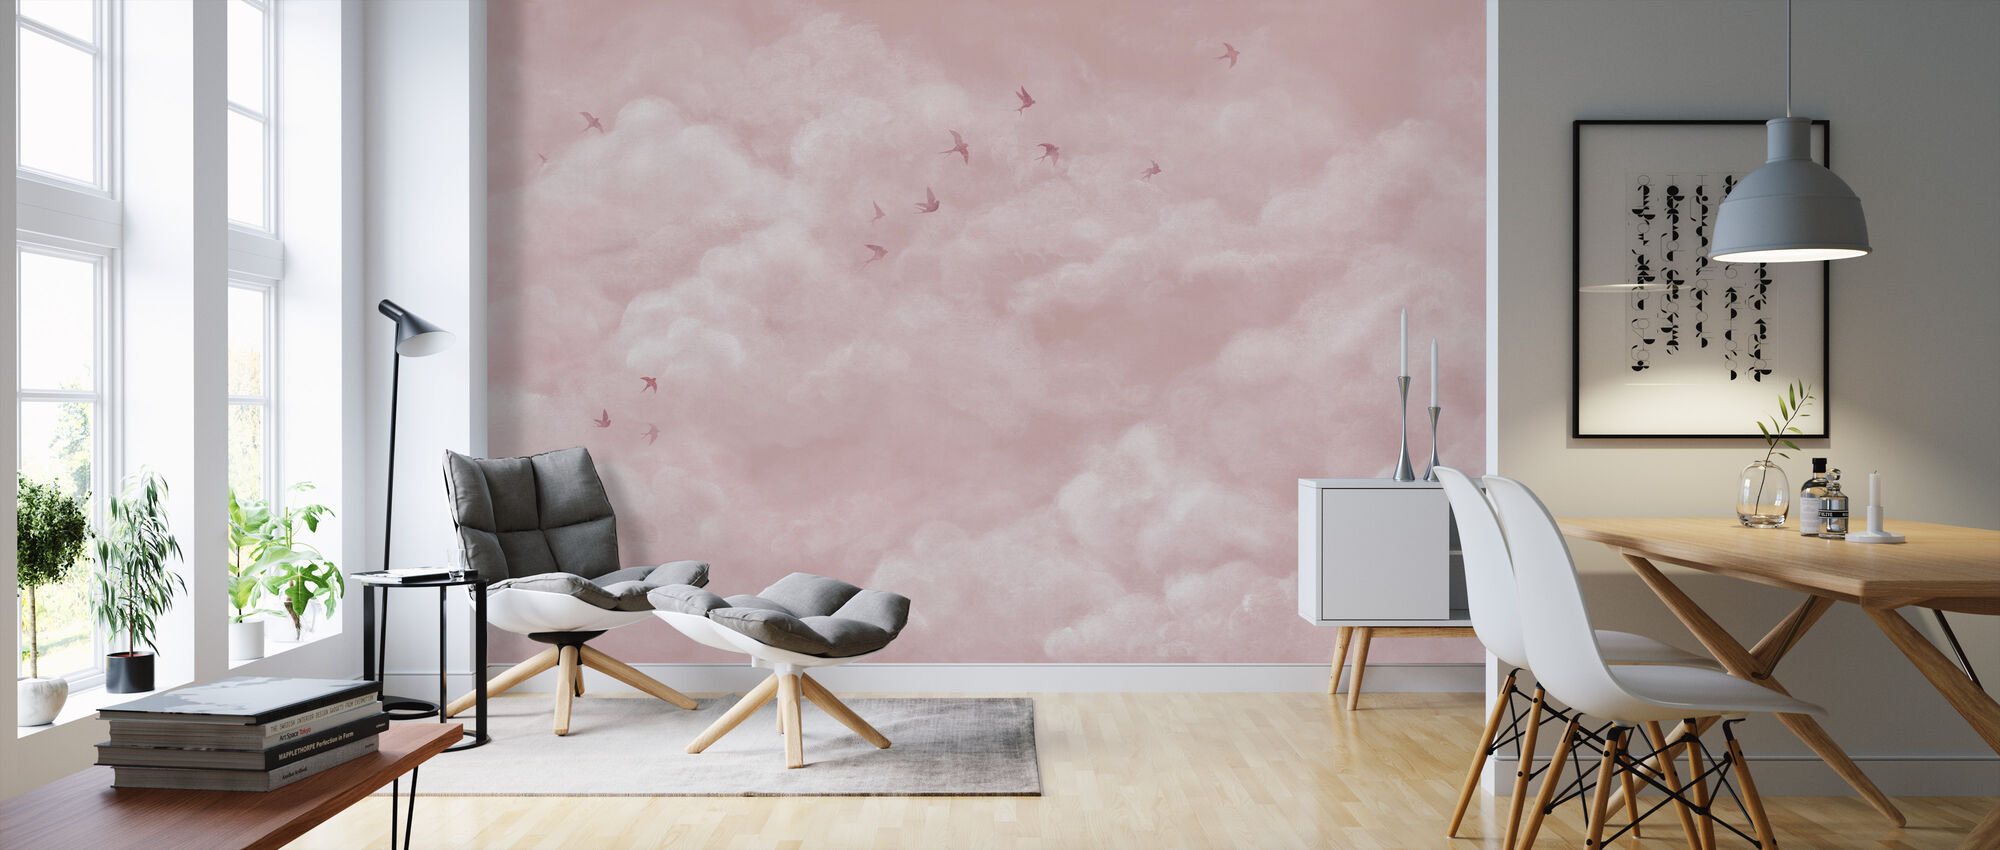 Tender Clouds with Swallows - Pink - Wallpaper - Living Room